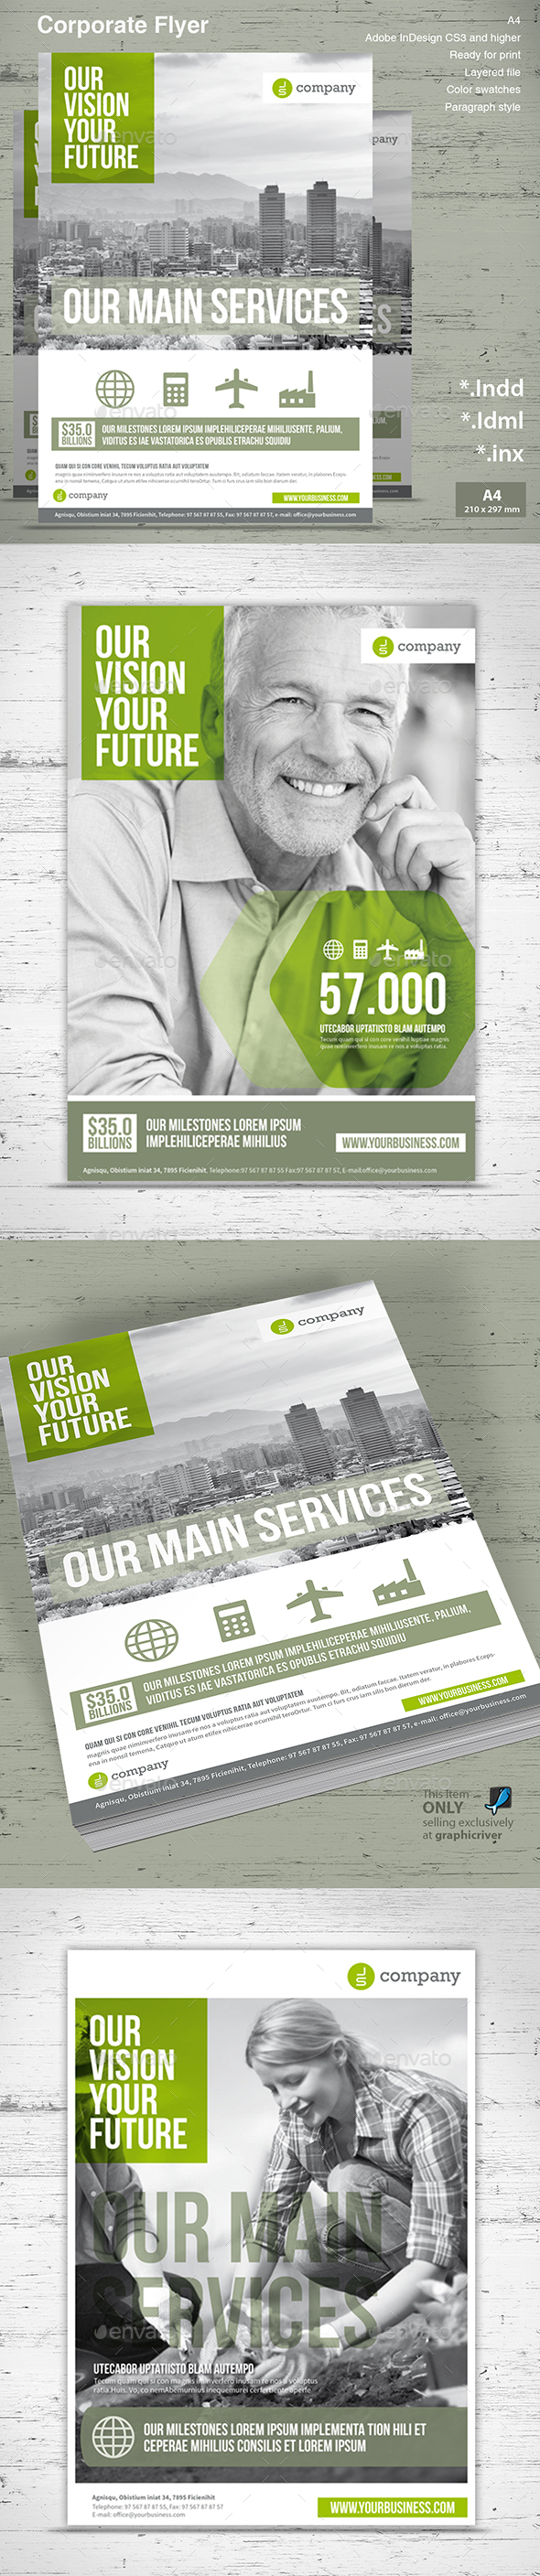 Corporate Flyer Vol. 2 - Commerce Flyers